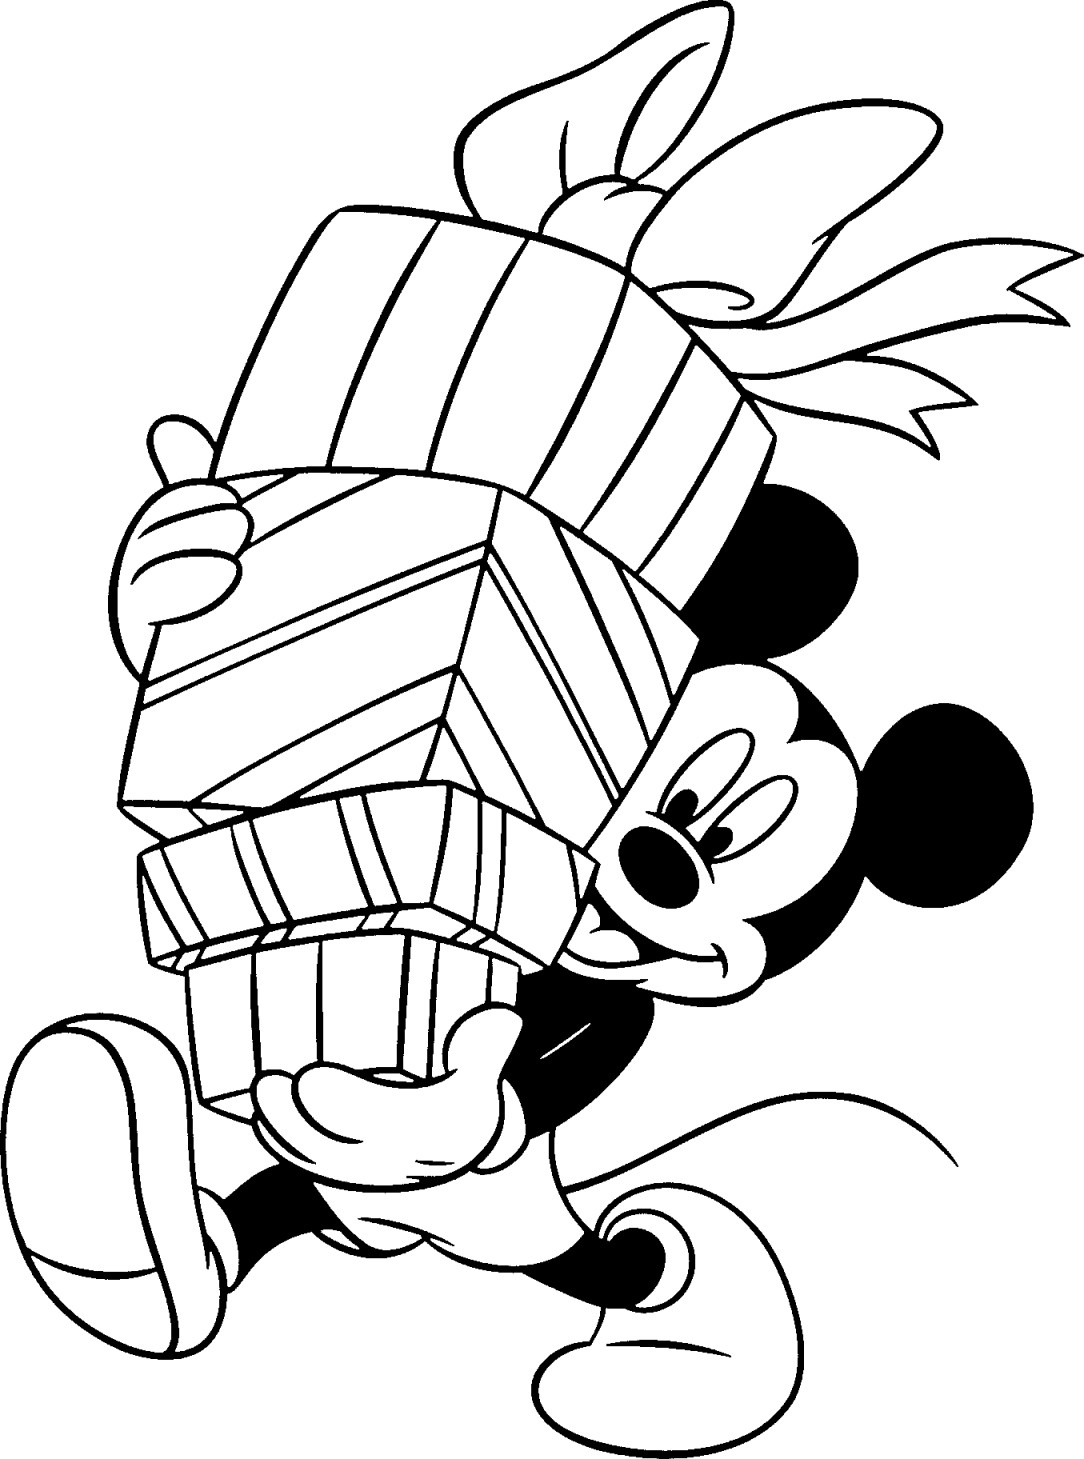 1084x1459 Free Disney Christmas Printable Coloring Pages For Kids